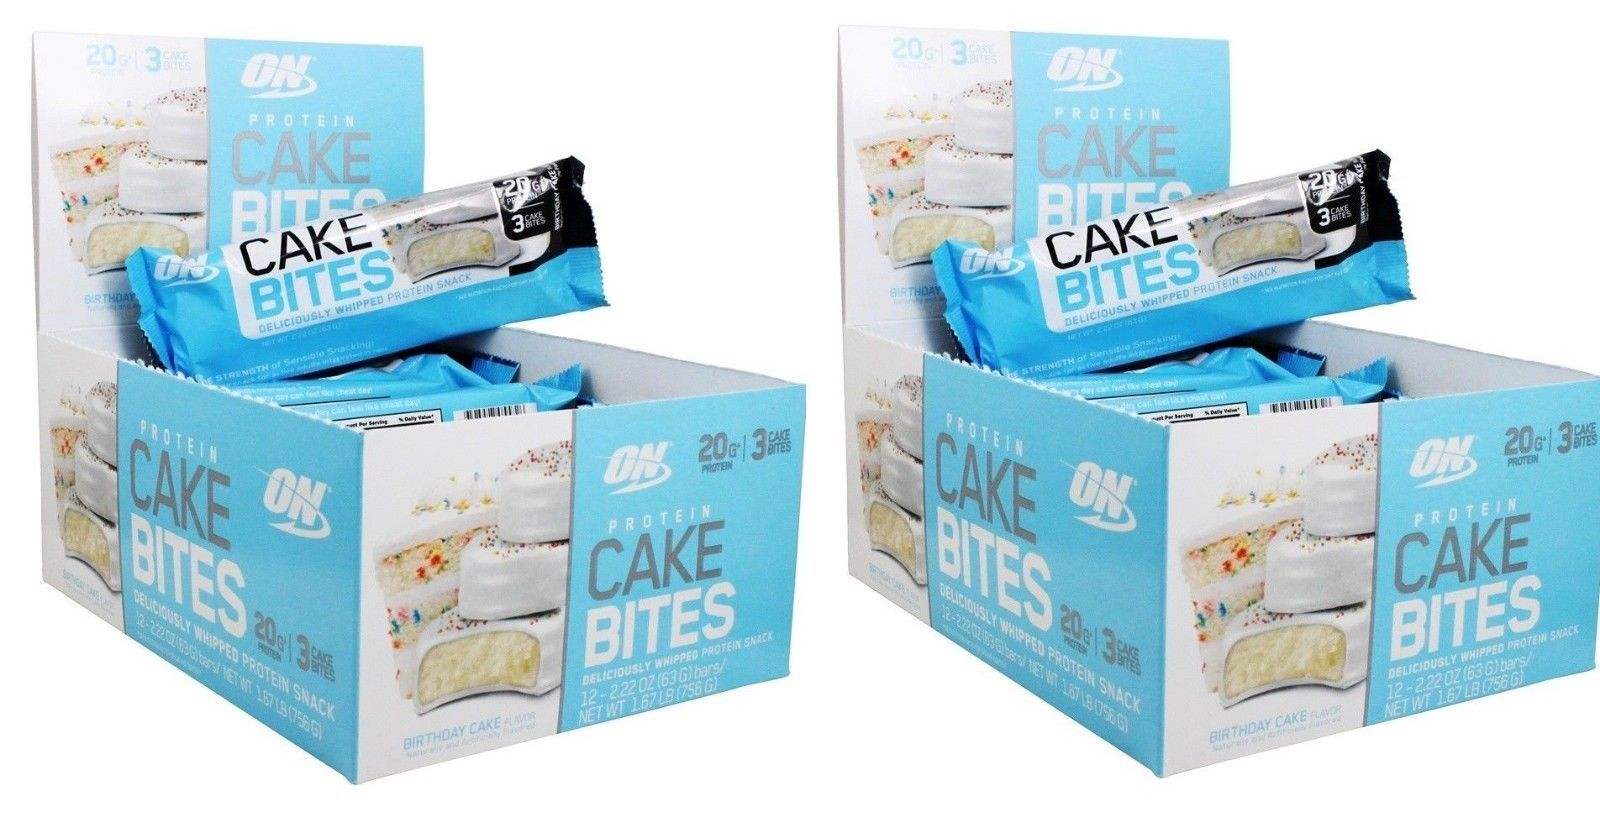 Protein Shakes And Bodybuilding 97034 Optimum Nutrition Cake Bite Birthday 24 Bars BUY IT NOW ONLY 2395 On EBay